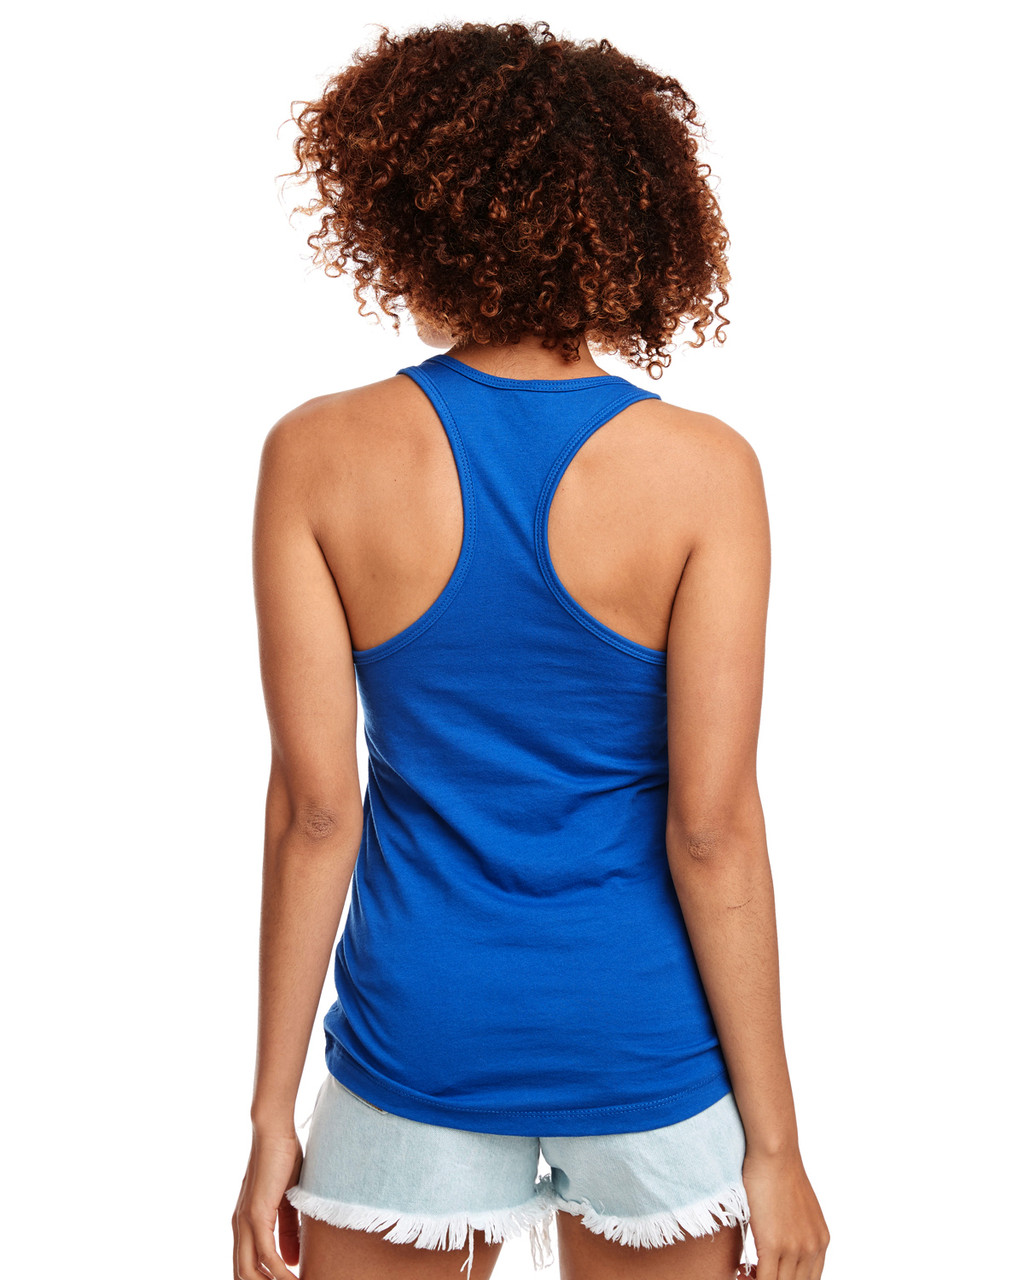 Royal - Back, N1533 Next Level Ideal Racerback Tank Top | Blankclothing.ca